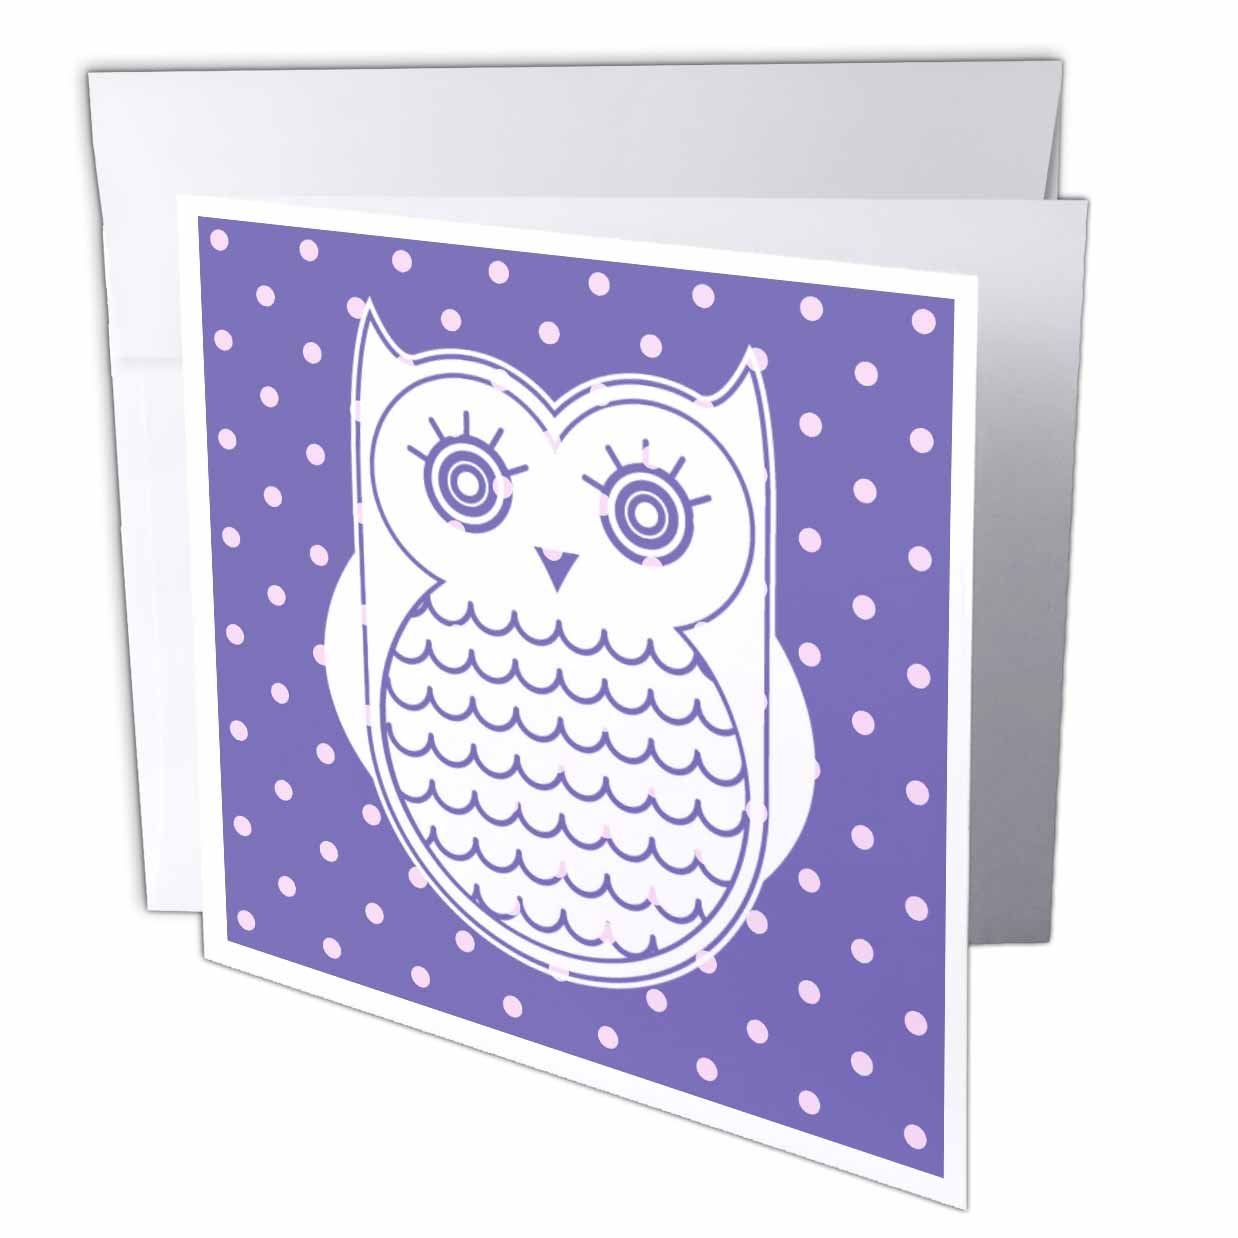 3dRose Cute Purple Polka Dot Owl - Kawaii Art - Fun Adorable Art, Greeting Cards, 6 x 6 inches, set of 12